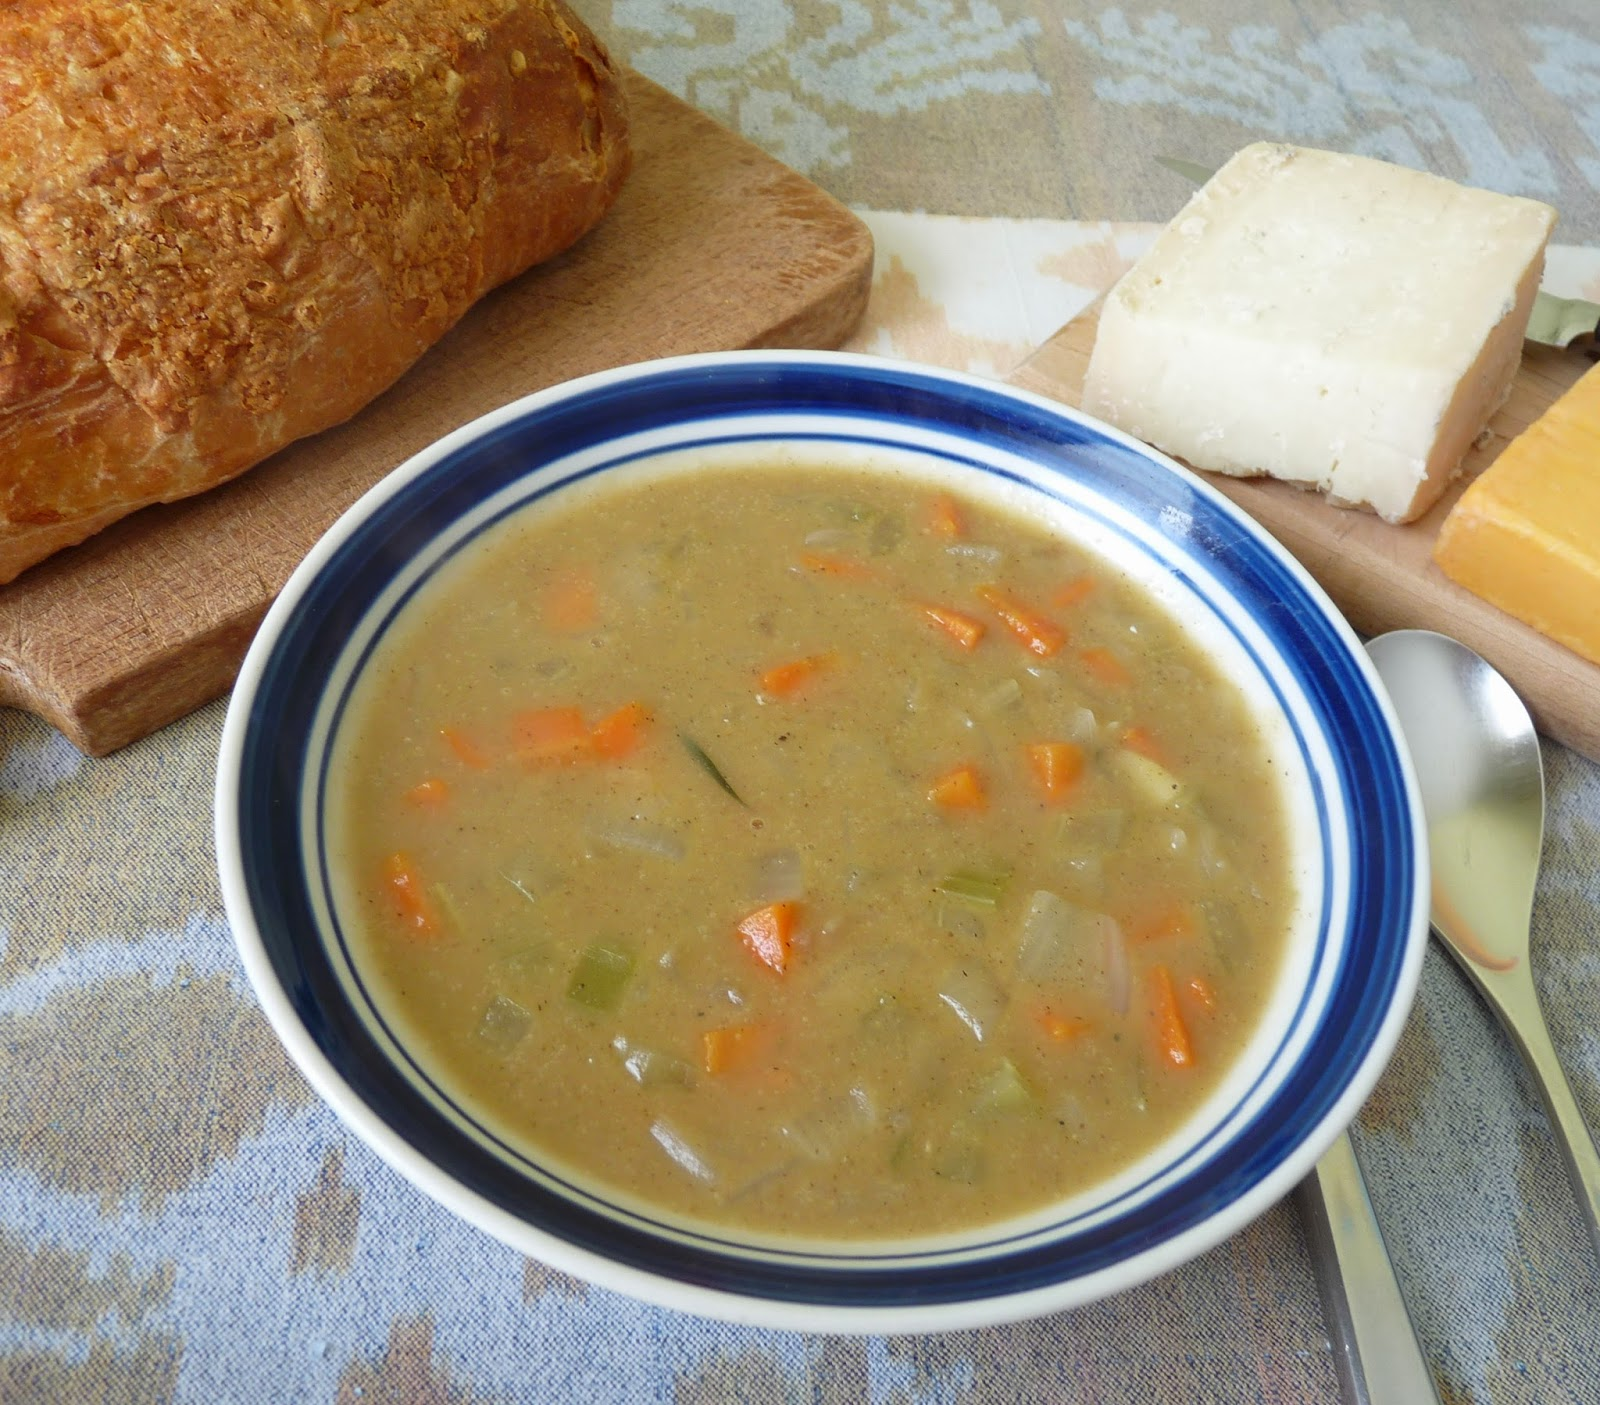 Toasted Barley Flour Soup with Vegetables